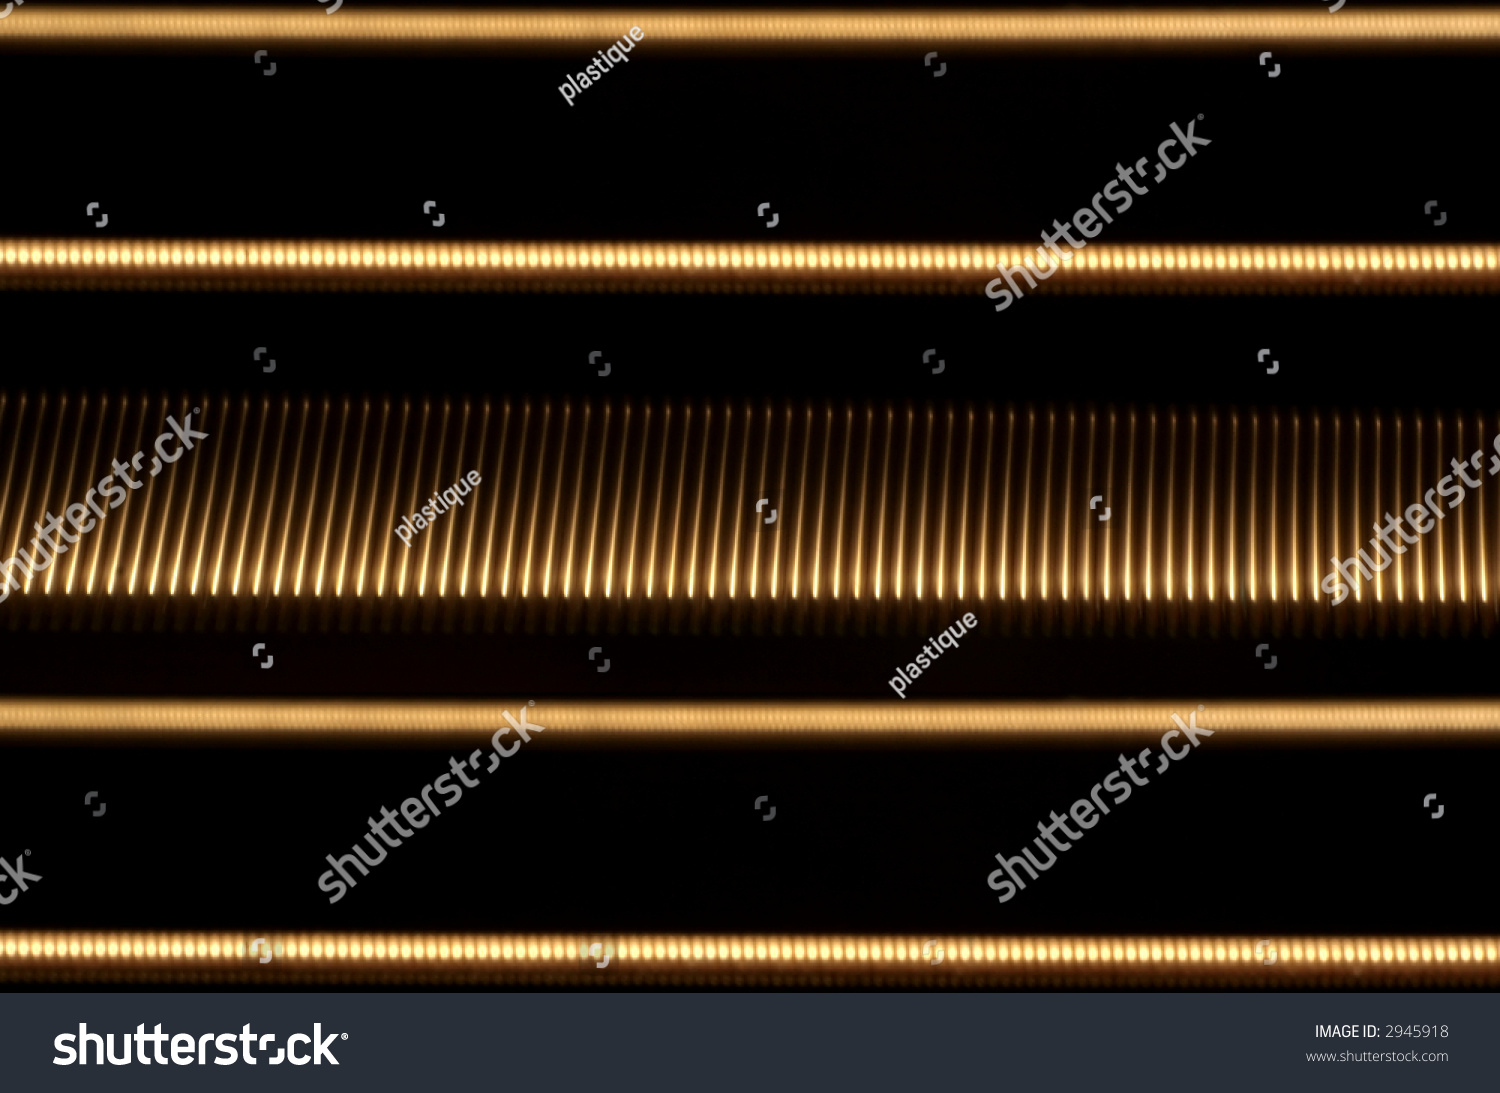 extreme magnification of guitar strings one string is vibrating motion blur stock photo. Black Bedroom Furniture Sets. Home Design Ideas